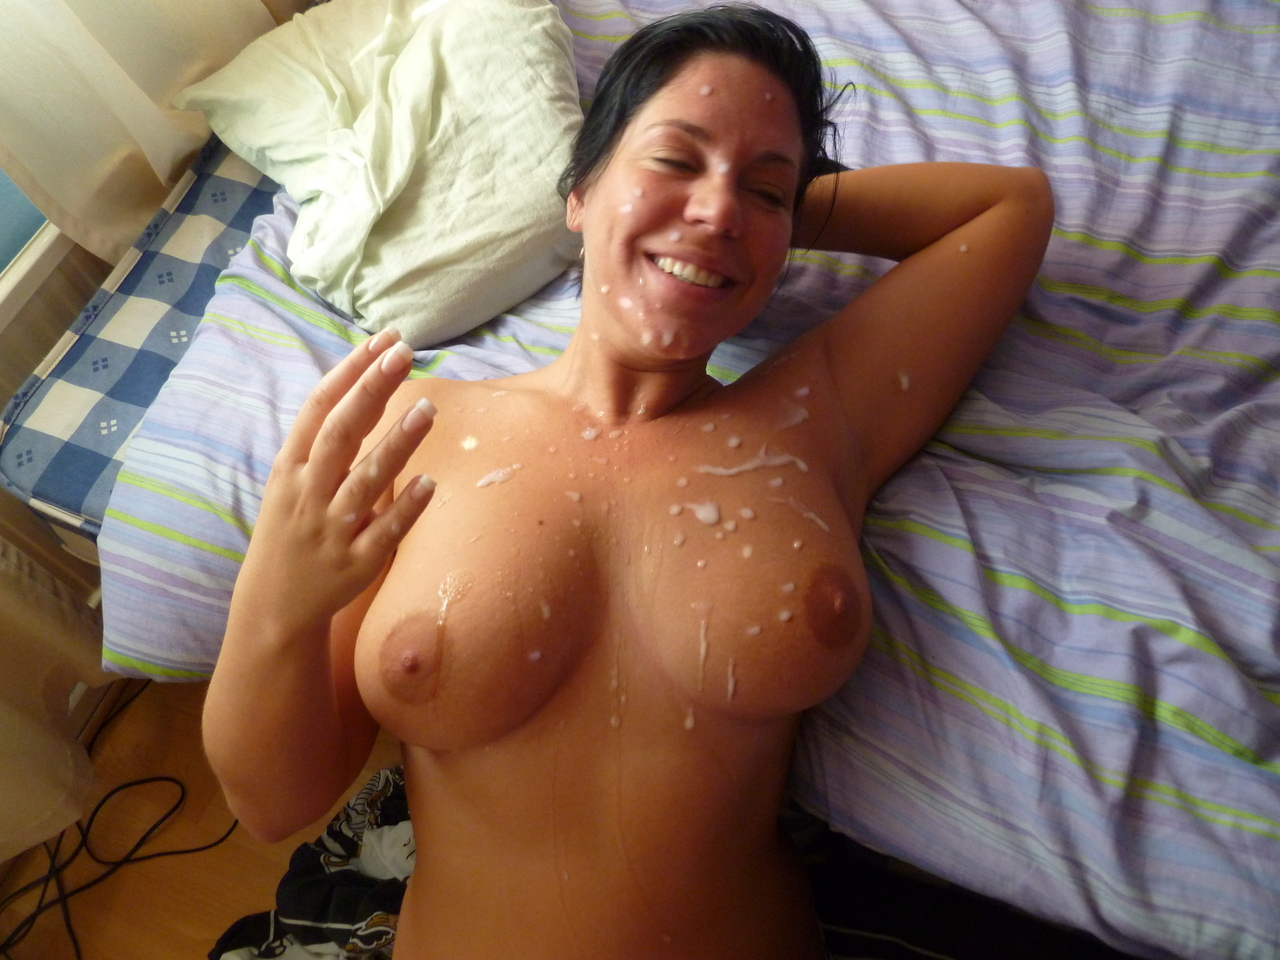 Amateur anal virgin destroyed wrecked stretched